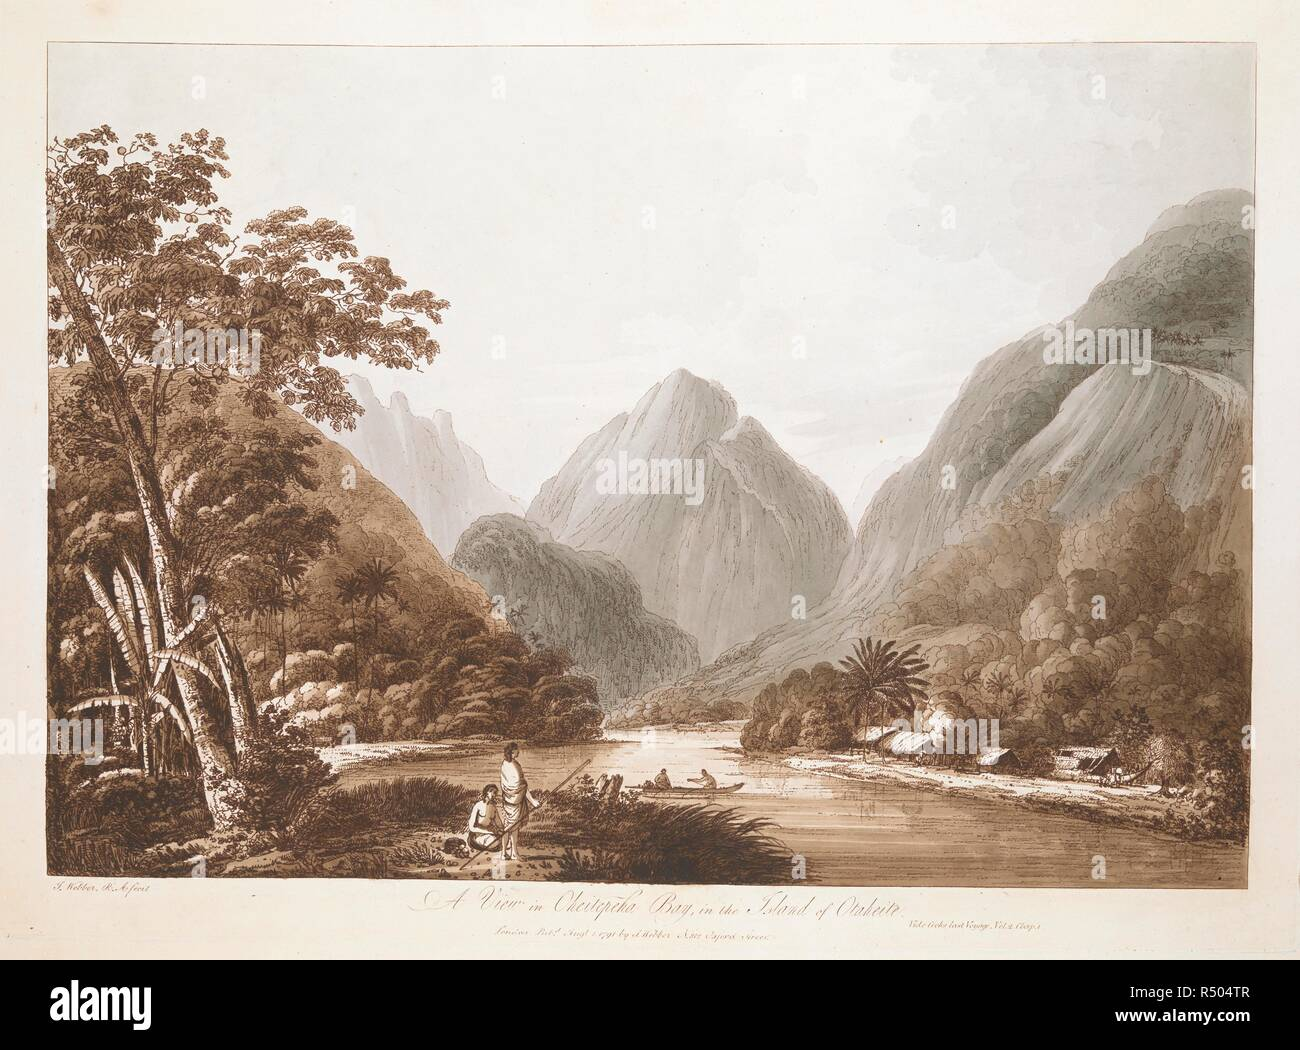 A View in Oheitepeha Bay, in the Island of Otaheite. Landscape with two figures in a canoe on a stretch of water surrounded by tall mountains, with thick trees on the lower slopes to either side, thatched buildings on the shore to right and two figures on the shore in the left foreground, one kneeling, the other standing and holding a spear.   . A View in Oheitepeha Bay, in the Island of Otaheite. : Vide Cooks last Voyage, Vol. 2, Chap I. / J. Webber R.A. fecit. London : Pubd Augt 1 1791 by I. Webber, No 312 Oxford Street., [August 1 1791]. 1 print : etching with hand-colouring ; platemark 32. - Stock Image